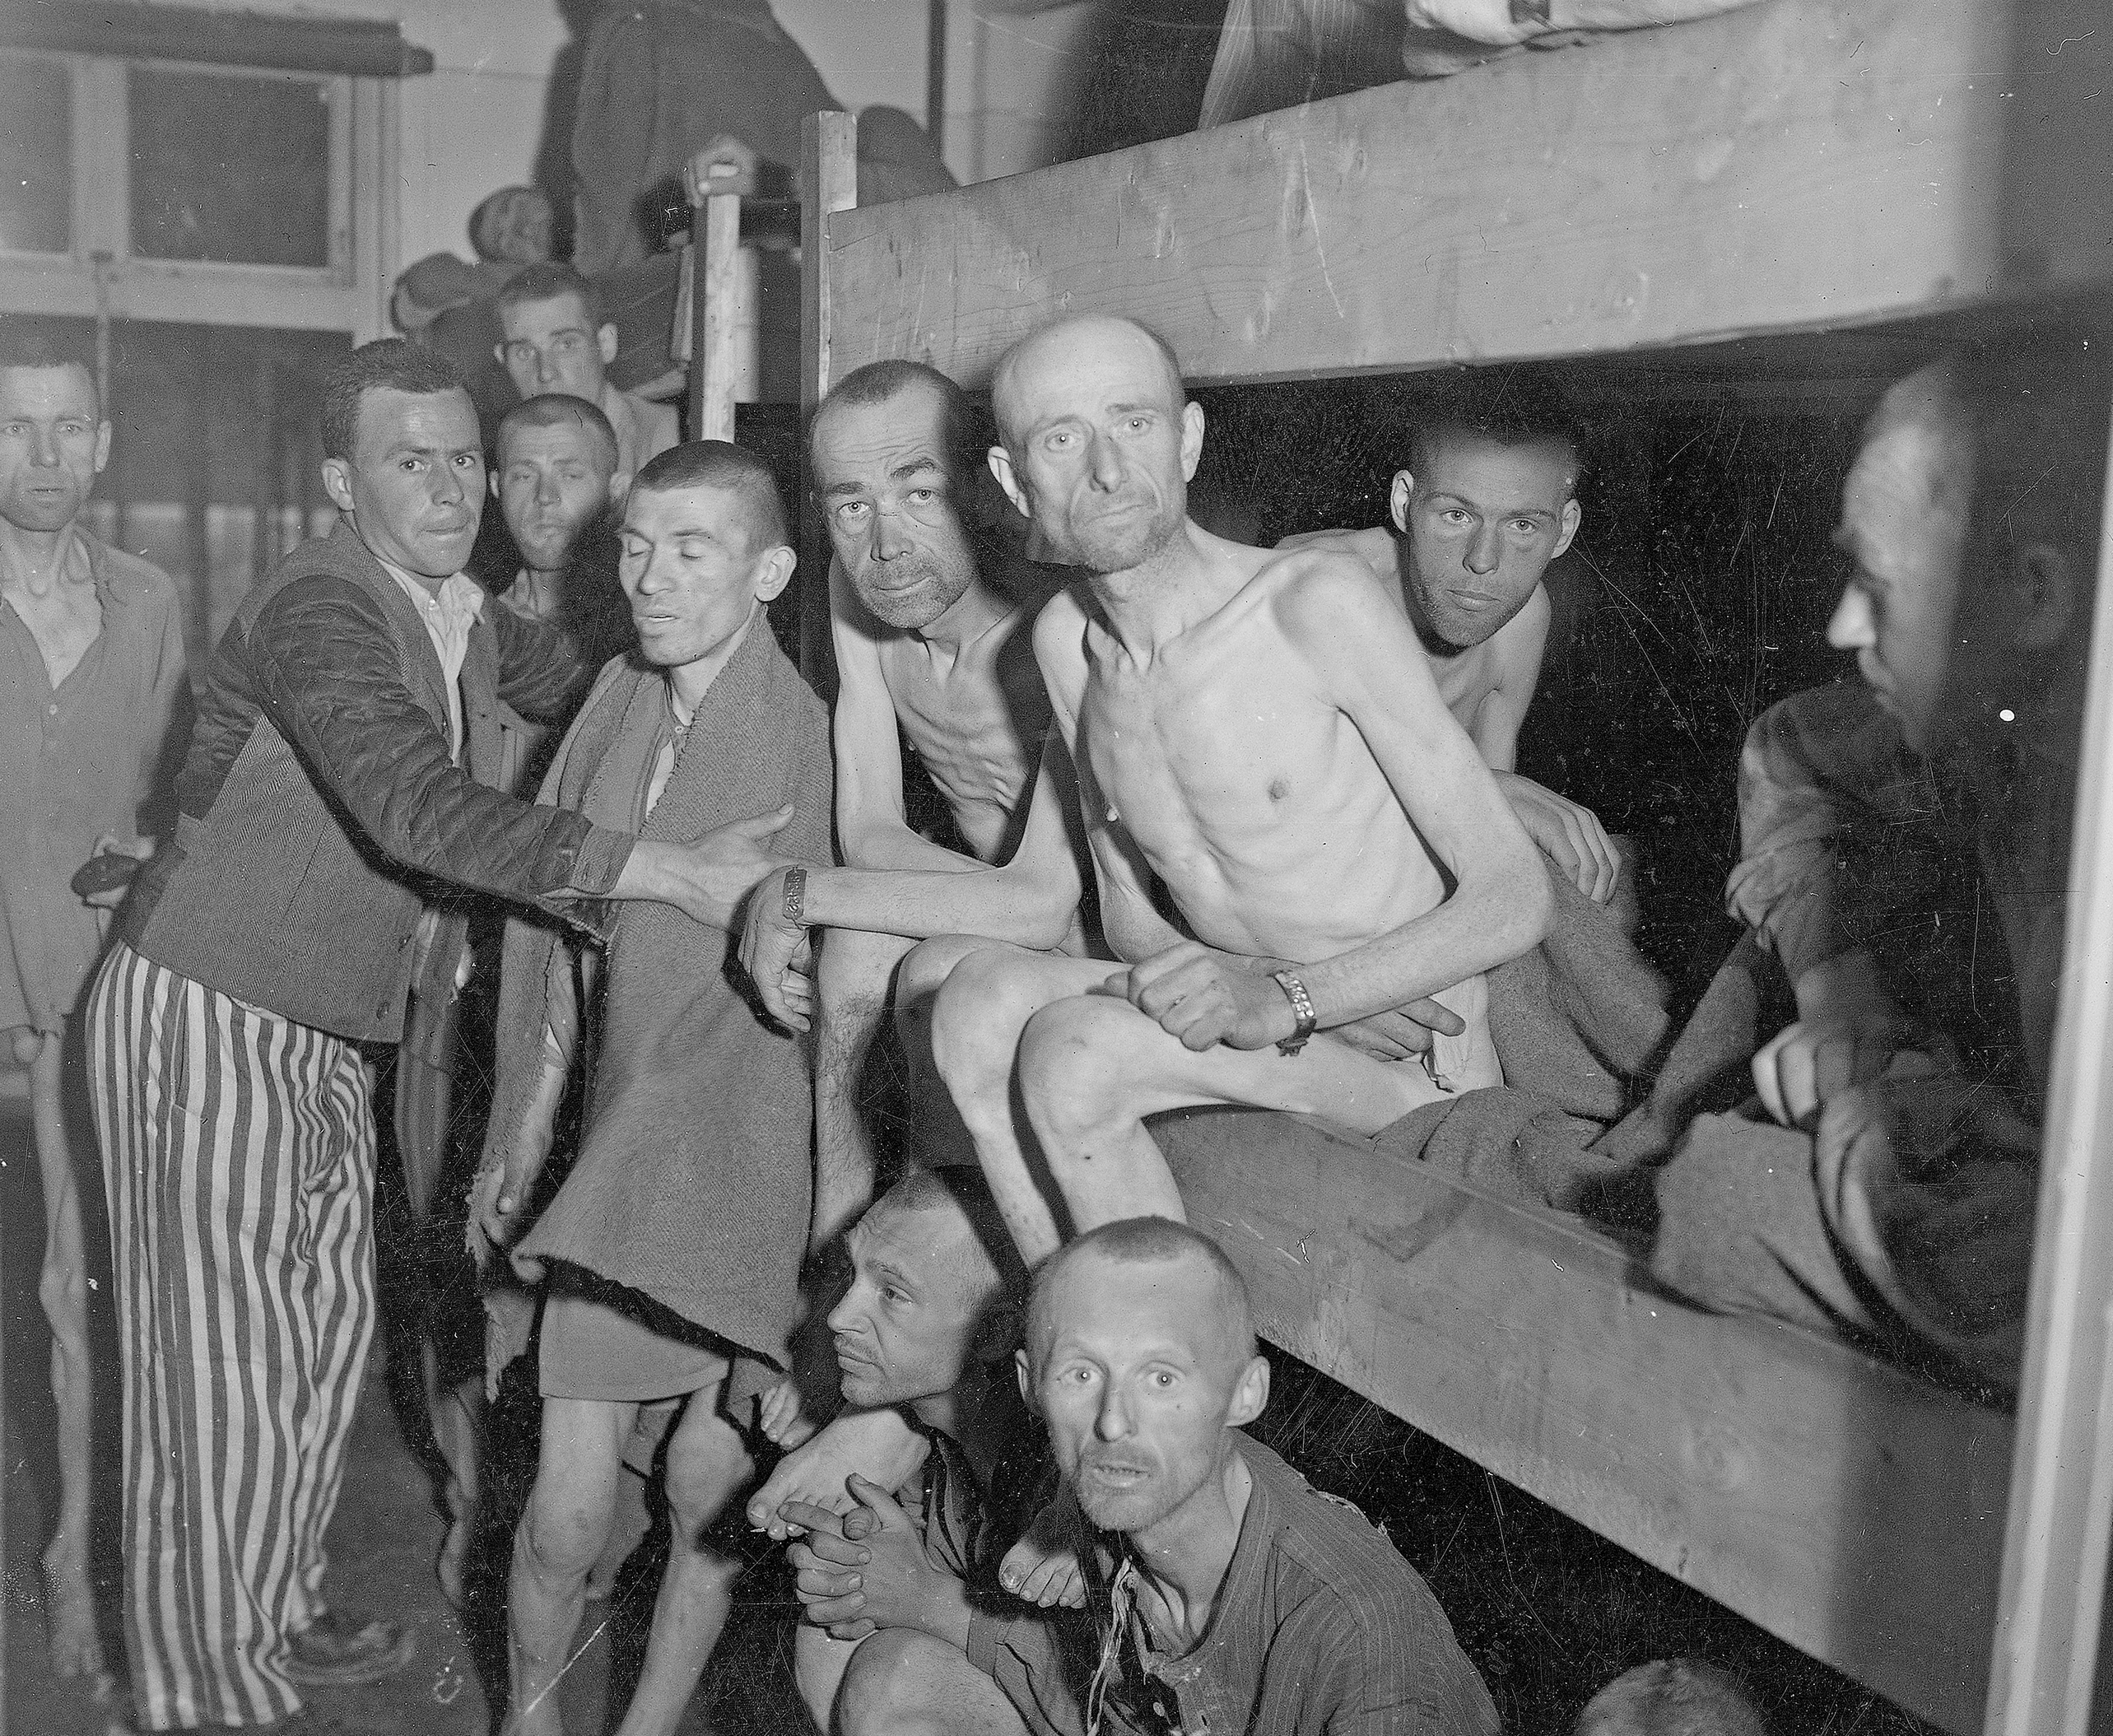 Survivors of Ebensee subcamp shortly after their liberation - Mauthausen-Gusen concentration camp